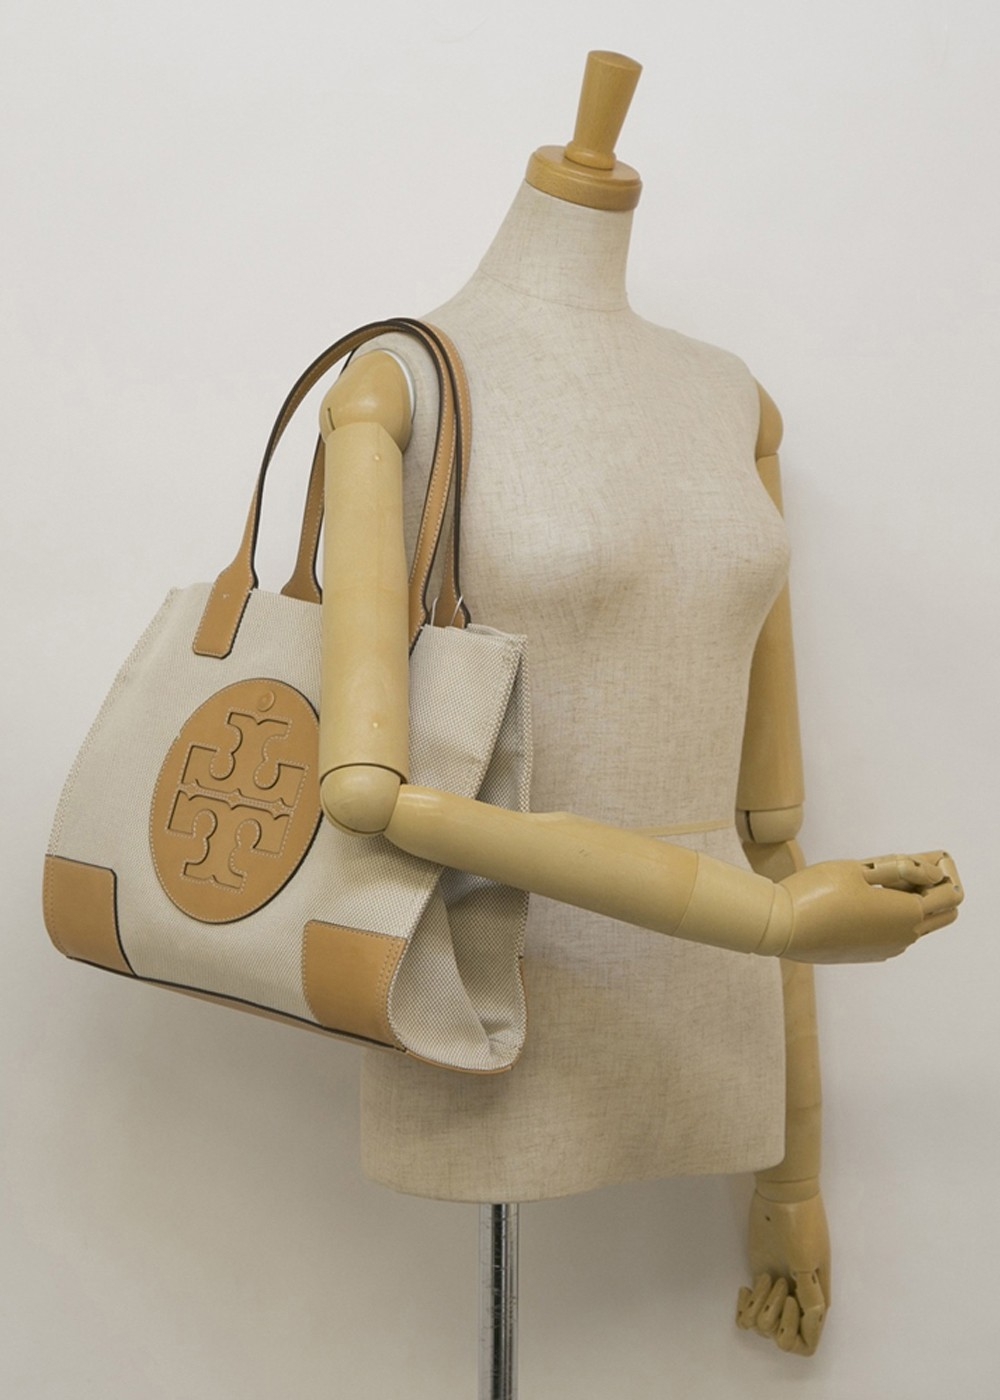 TORY BURCH|トリバーチ|ELLA|エラ|CANVAS MINI TOTE